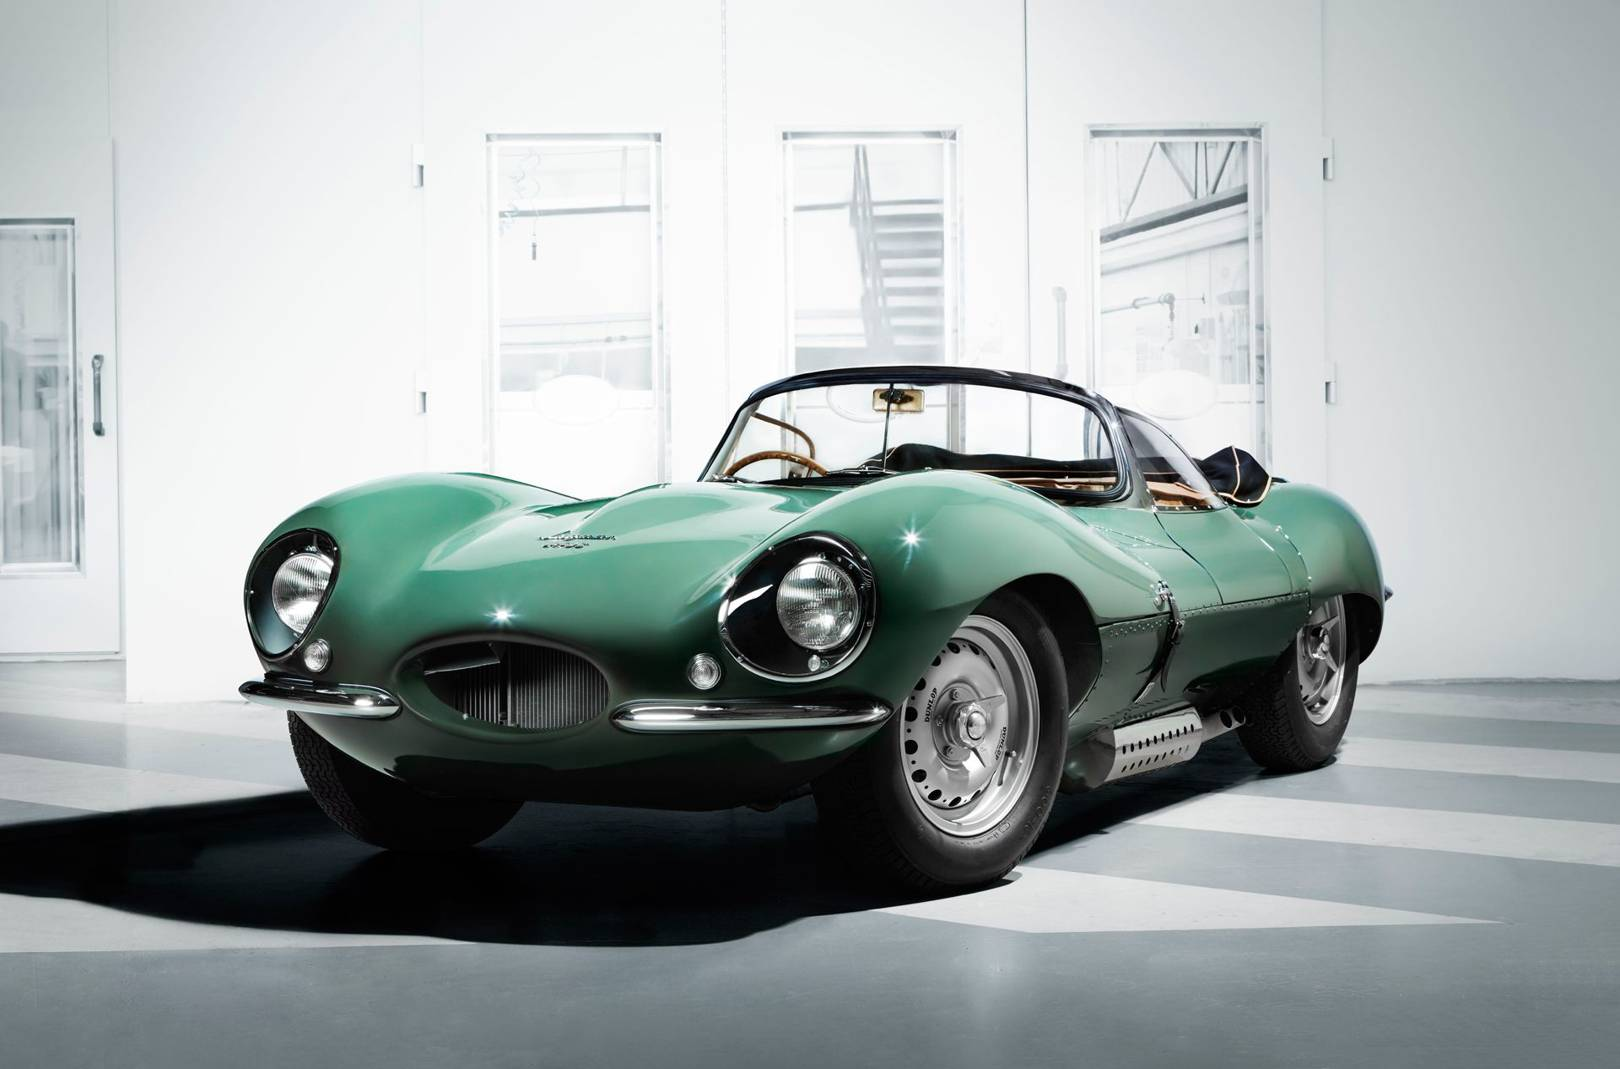 Jaguar XKSS: Jag Just Launched The Most Incredible New Old Car | British GQ